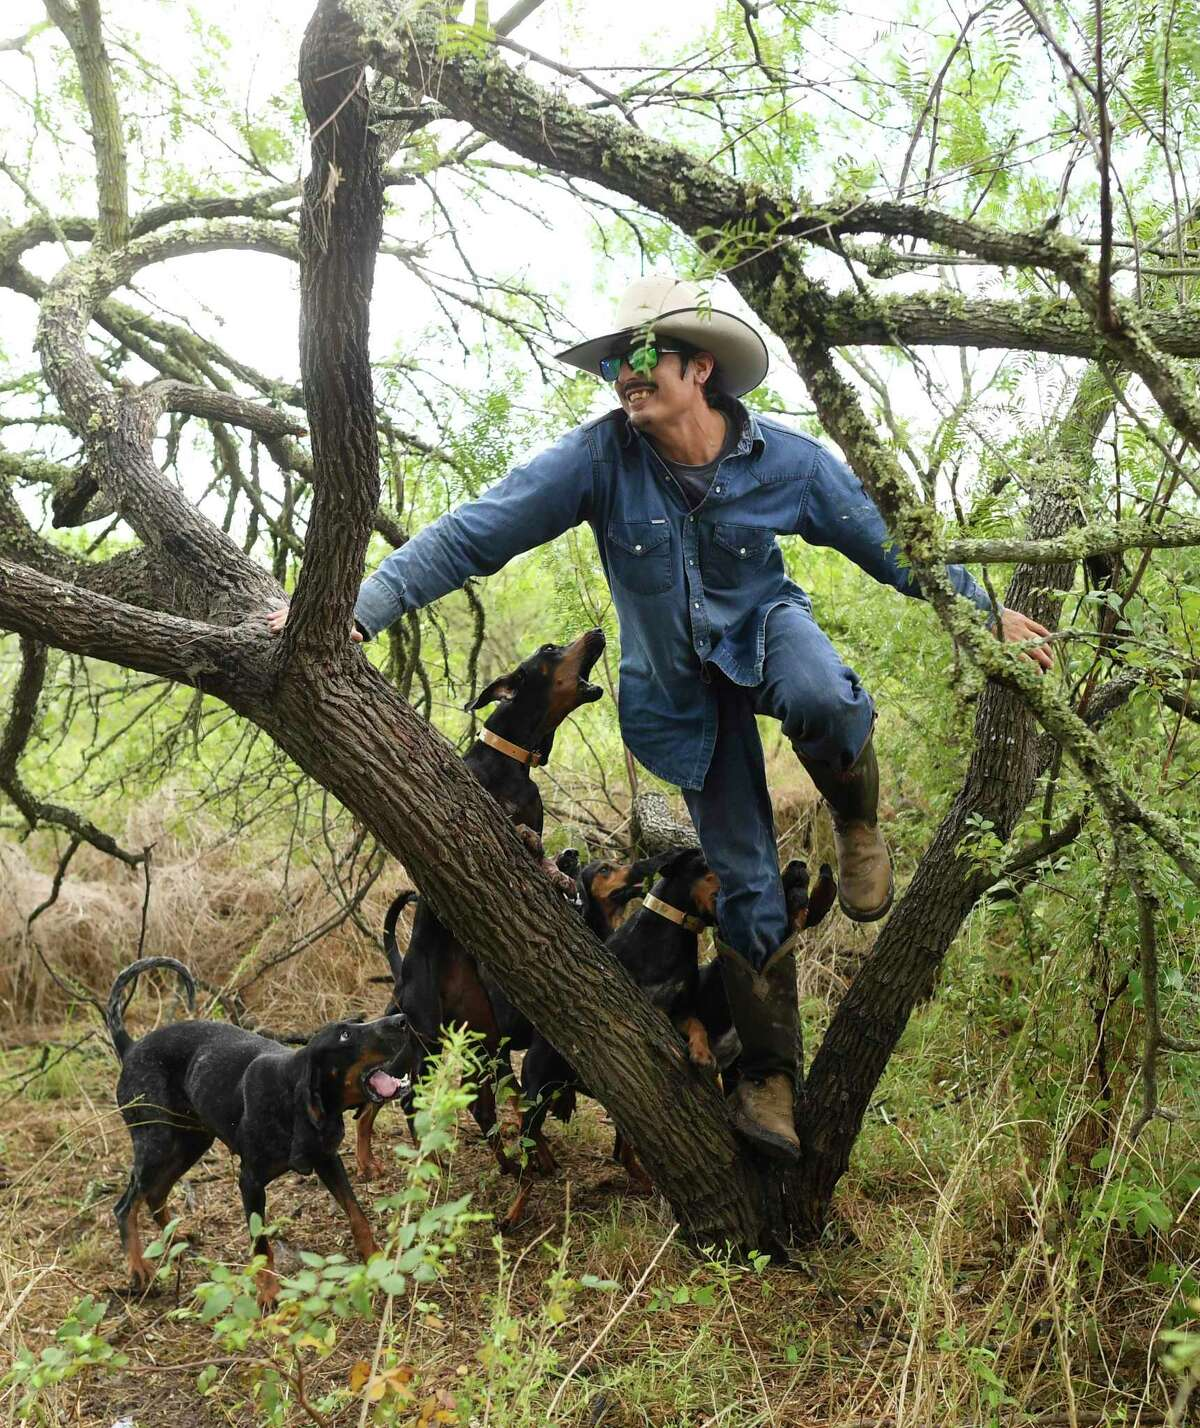 Gilbert Rosales of Texas Canine Tracking and Recovery is treed while playing the part of a decoy in a training session for dogs being taught to track humans.